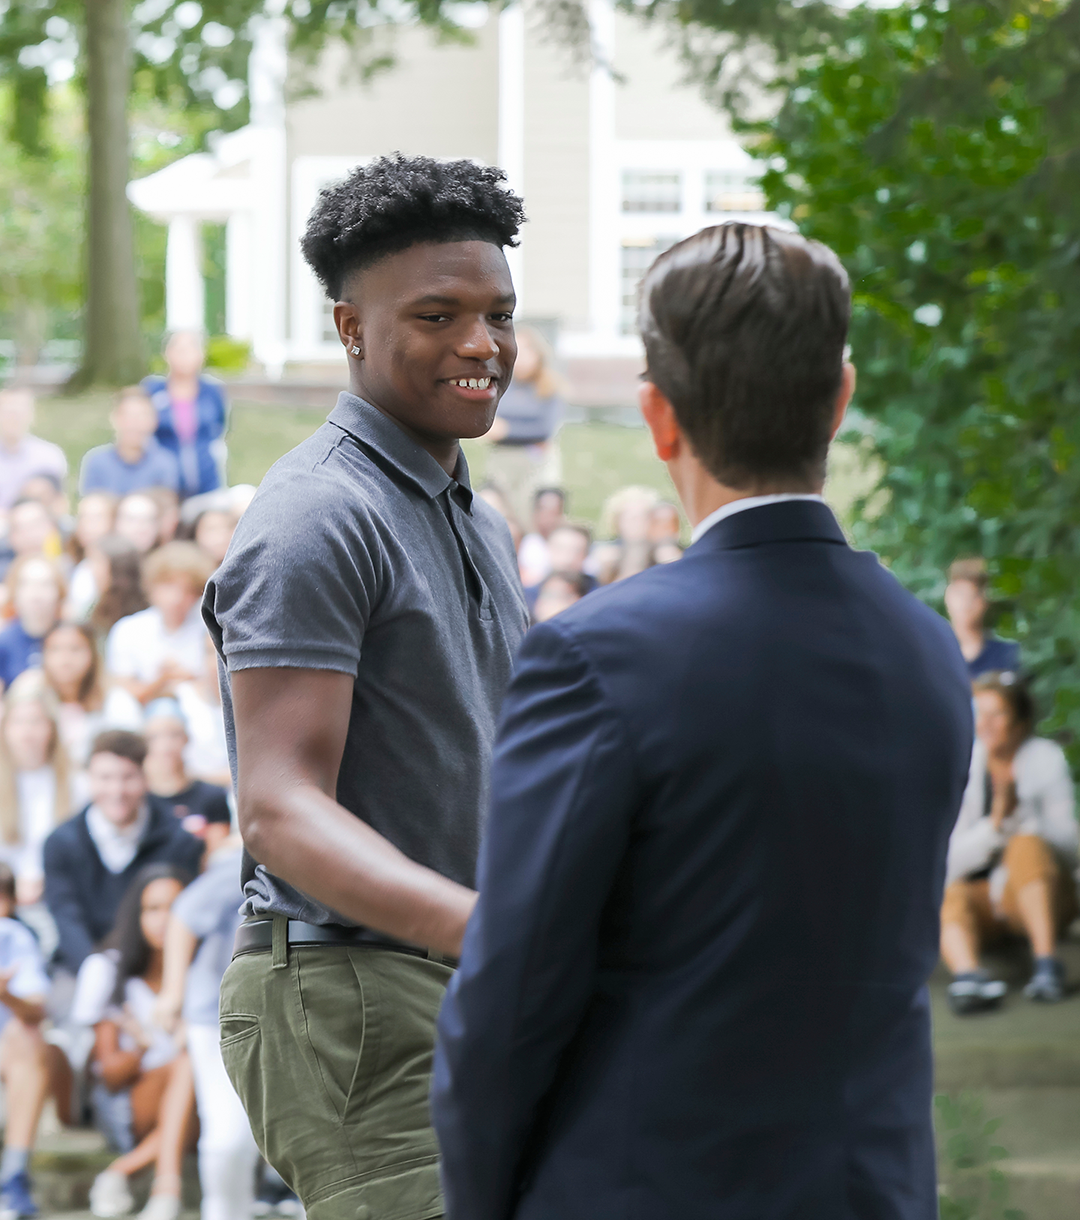 Head of School Mark Anderson congratulates senior Jyare Davis.